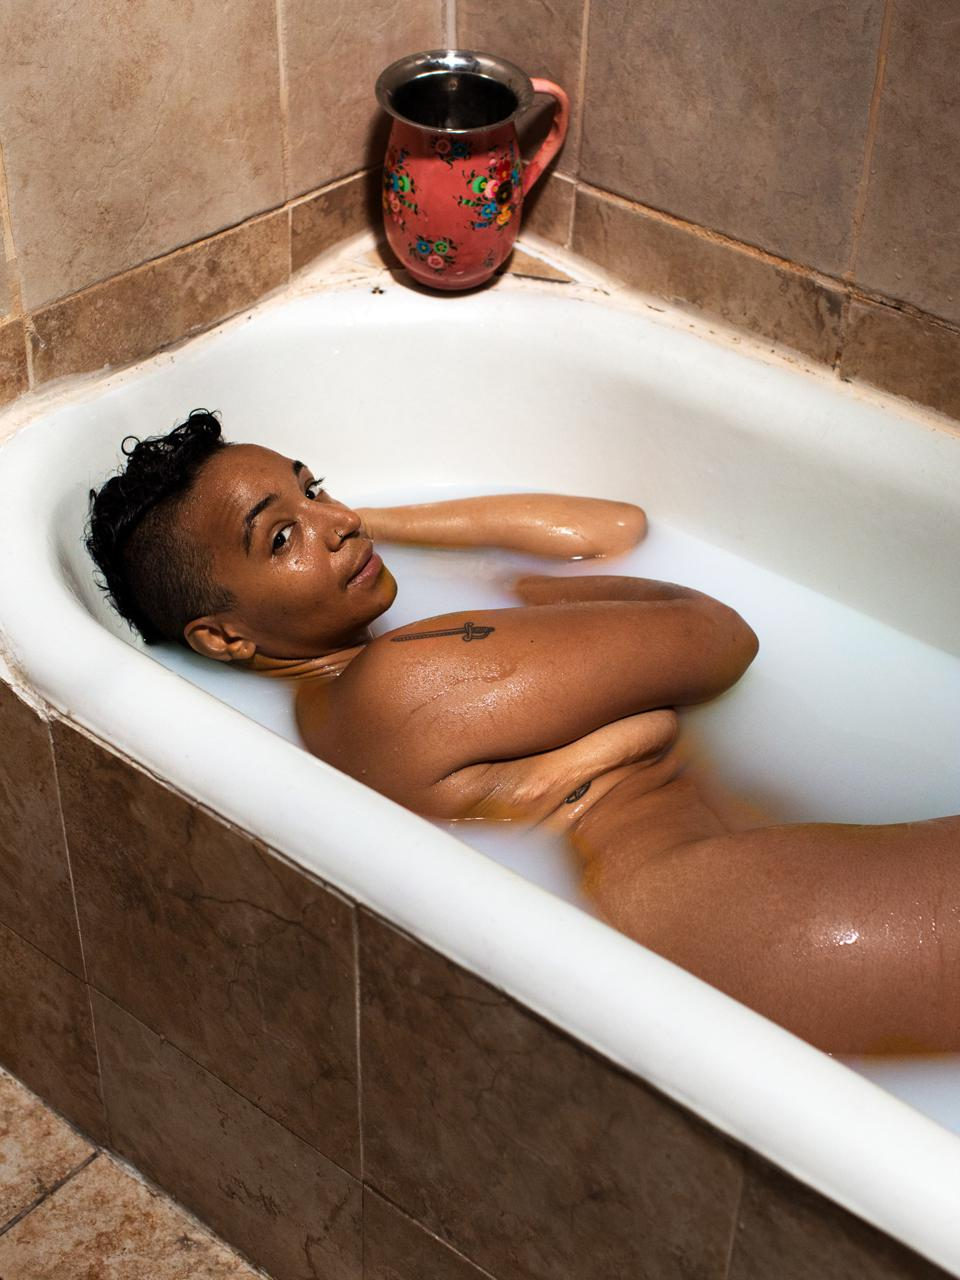 A black witch naked, lying in a bathtub, looking back over her shoulder at the camera.